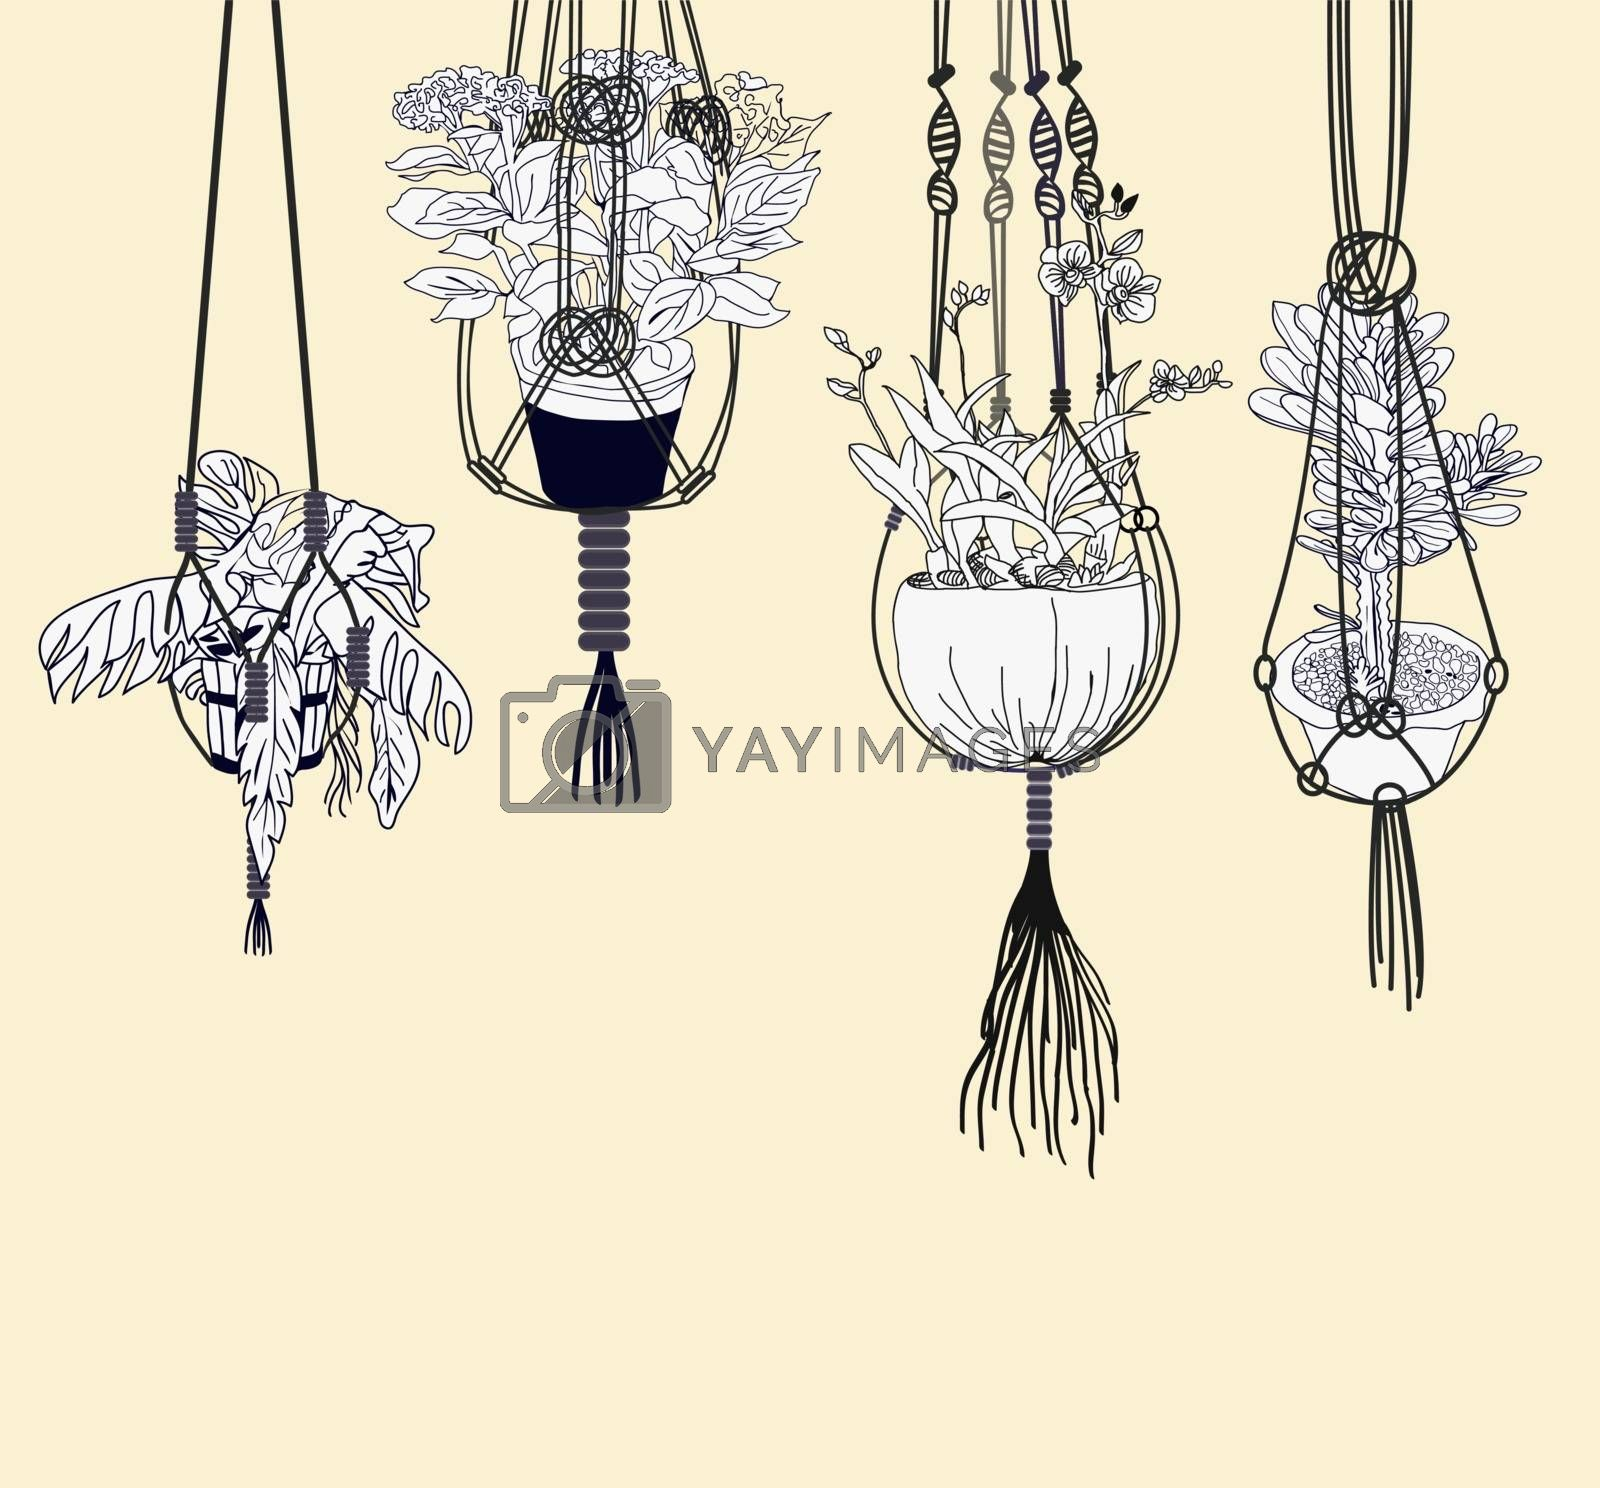 Houseplant flower pot collection, Greenery at home. Home garden illustration. Set of macrame hangers for plants growing in pots.